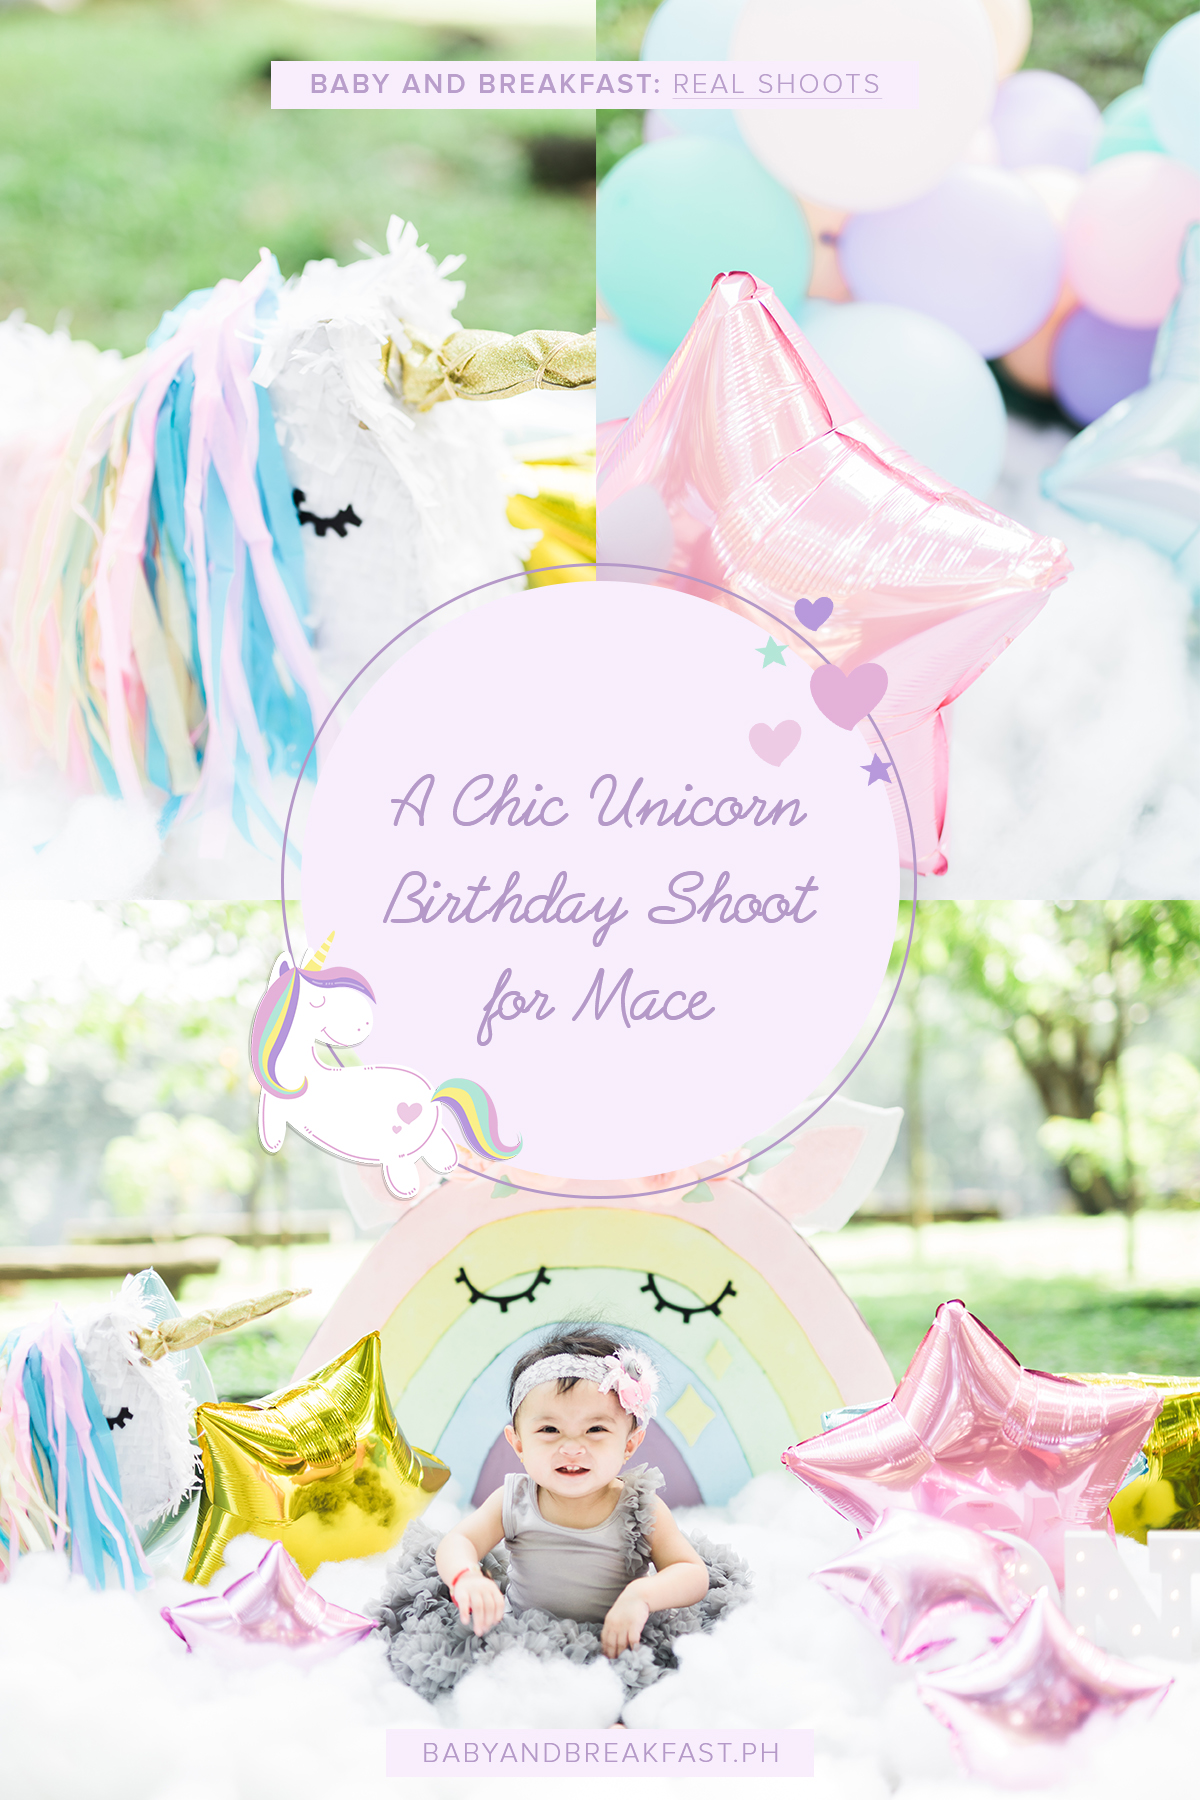 Baby and Breakfast: Real Shoots A Chic Unicorn Birthday Shoot for Mace